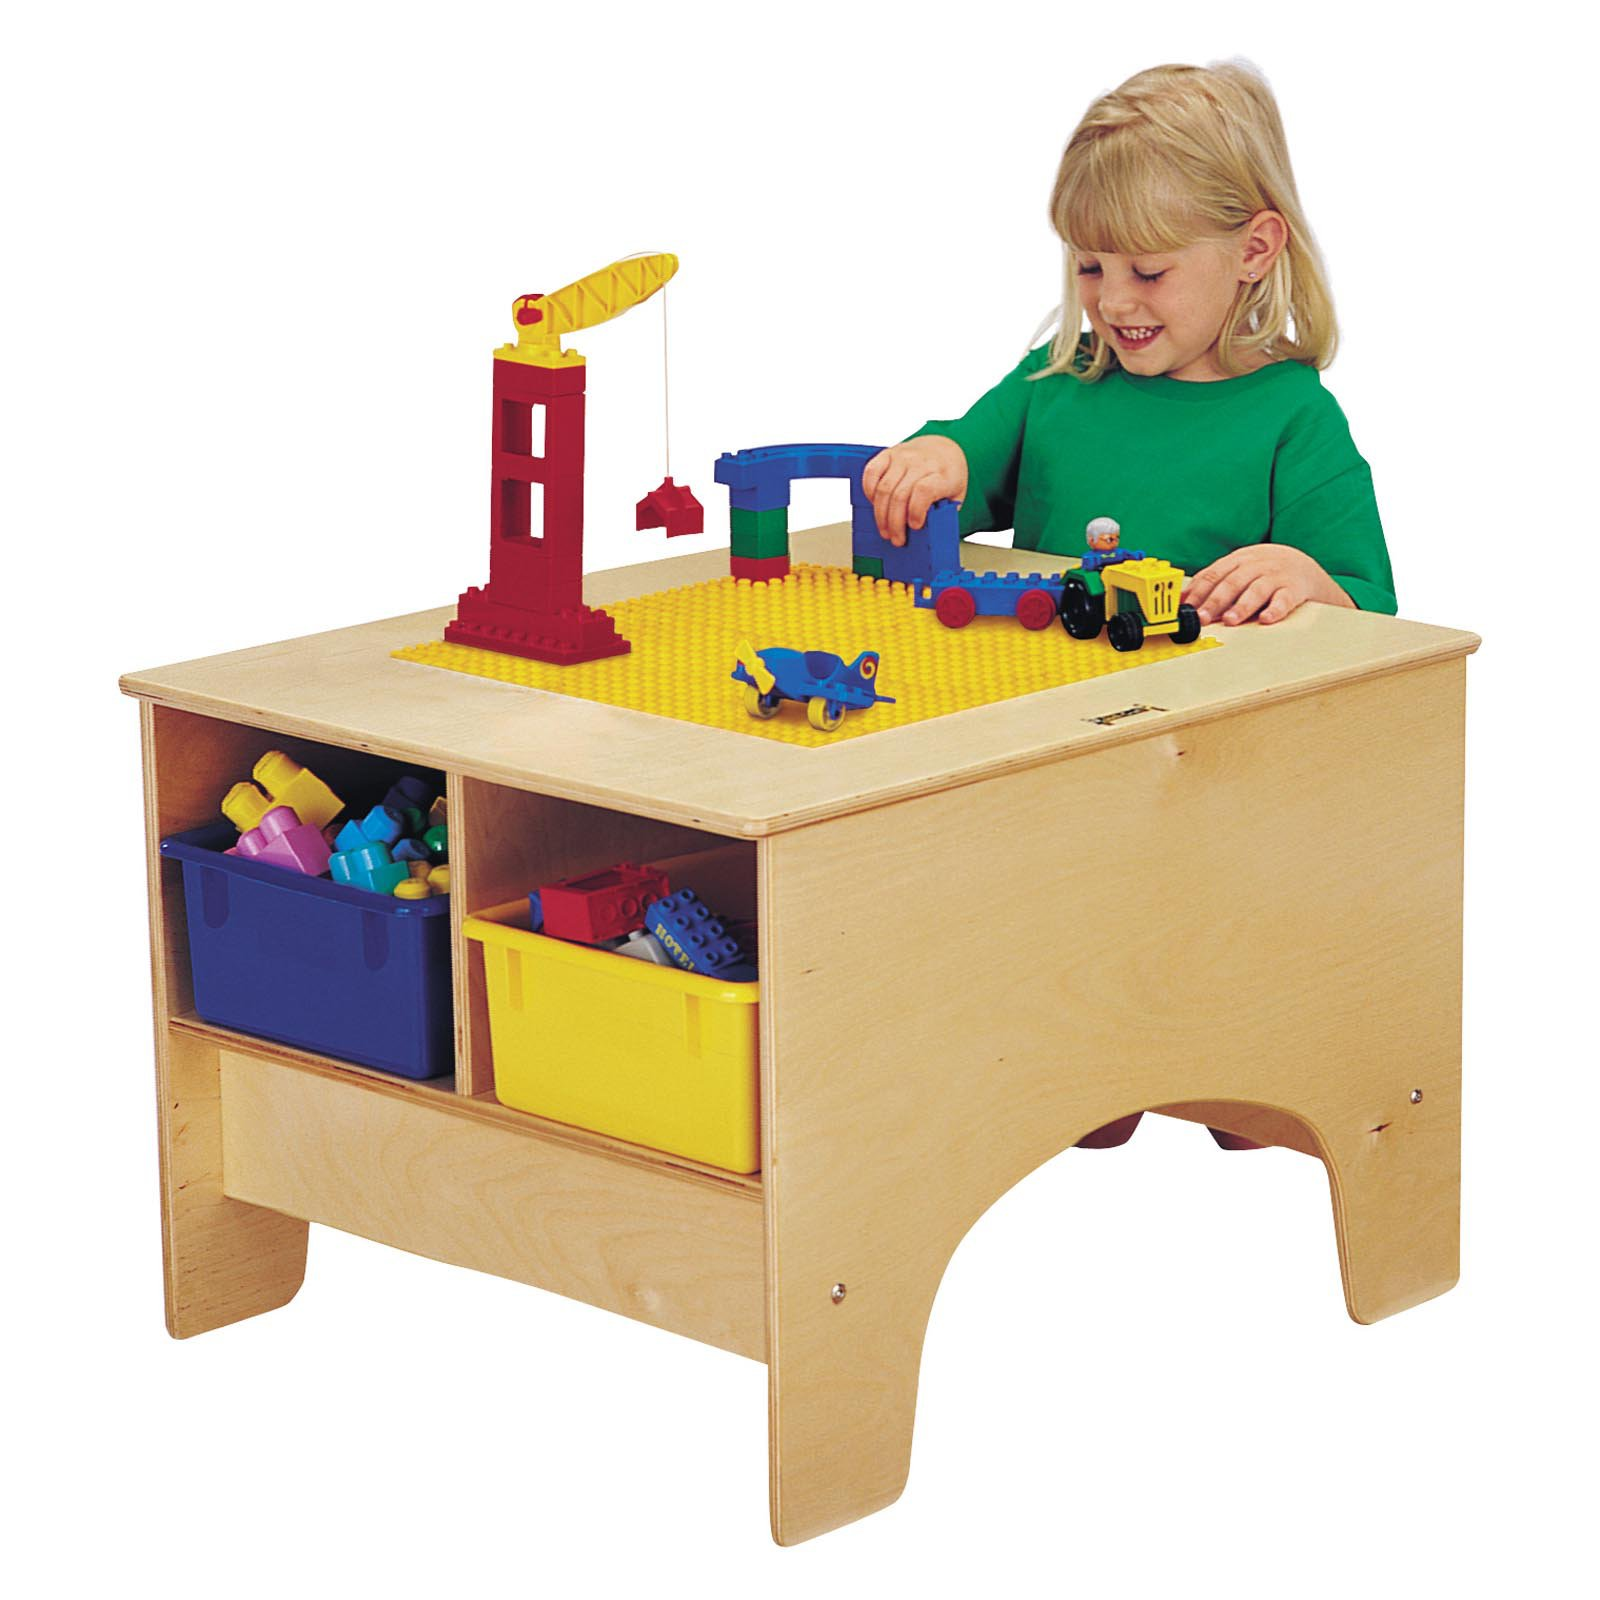 Jonti-Craft Kydz Building Table